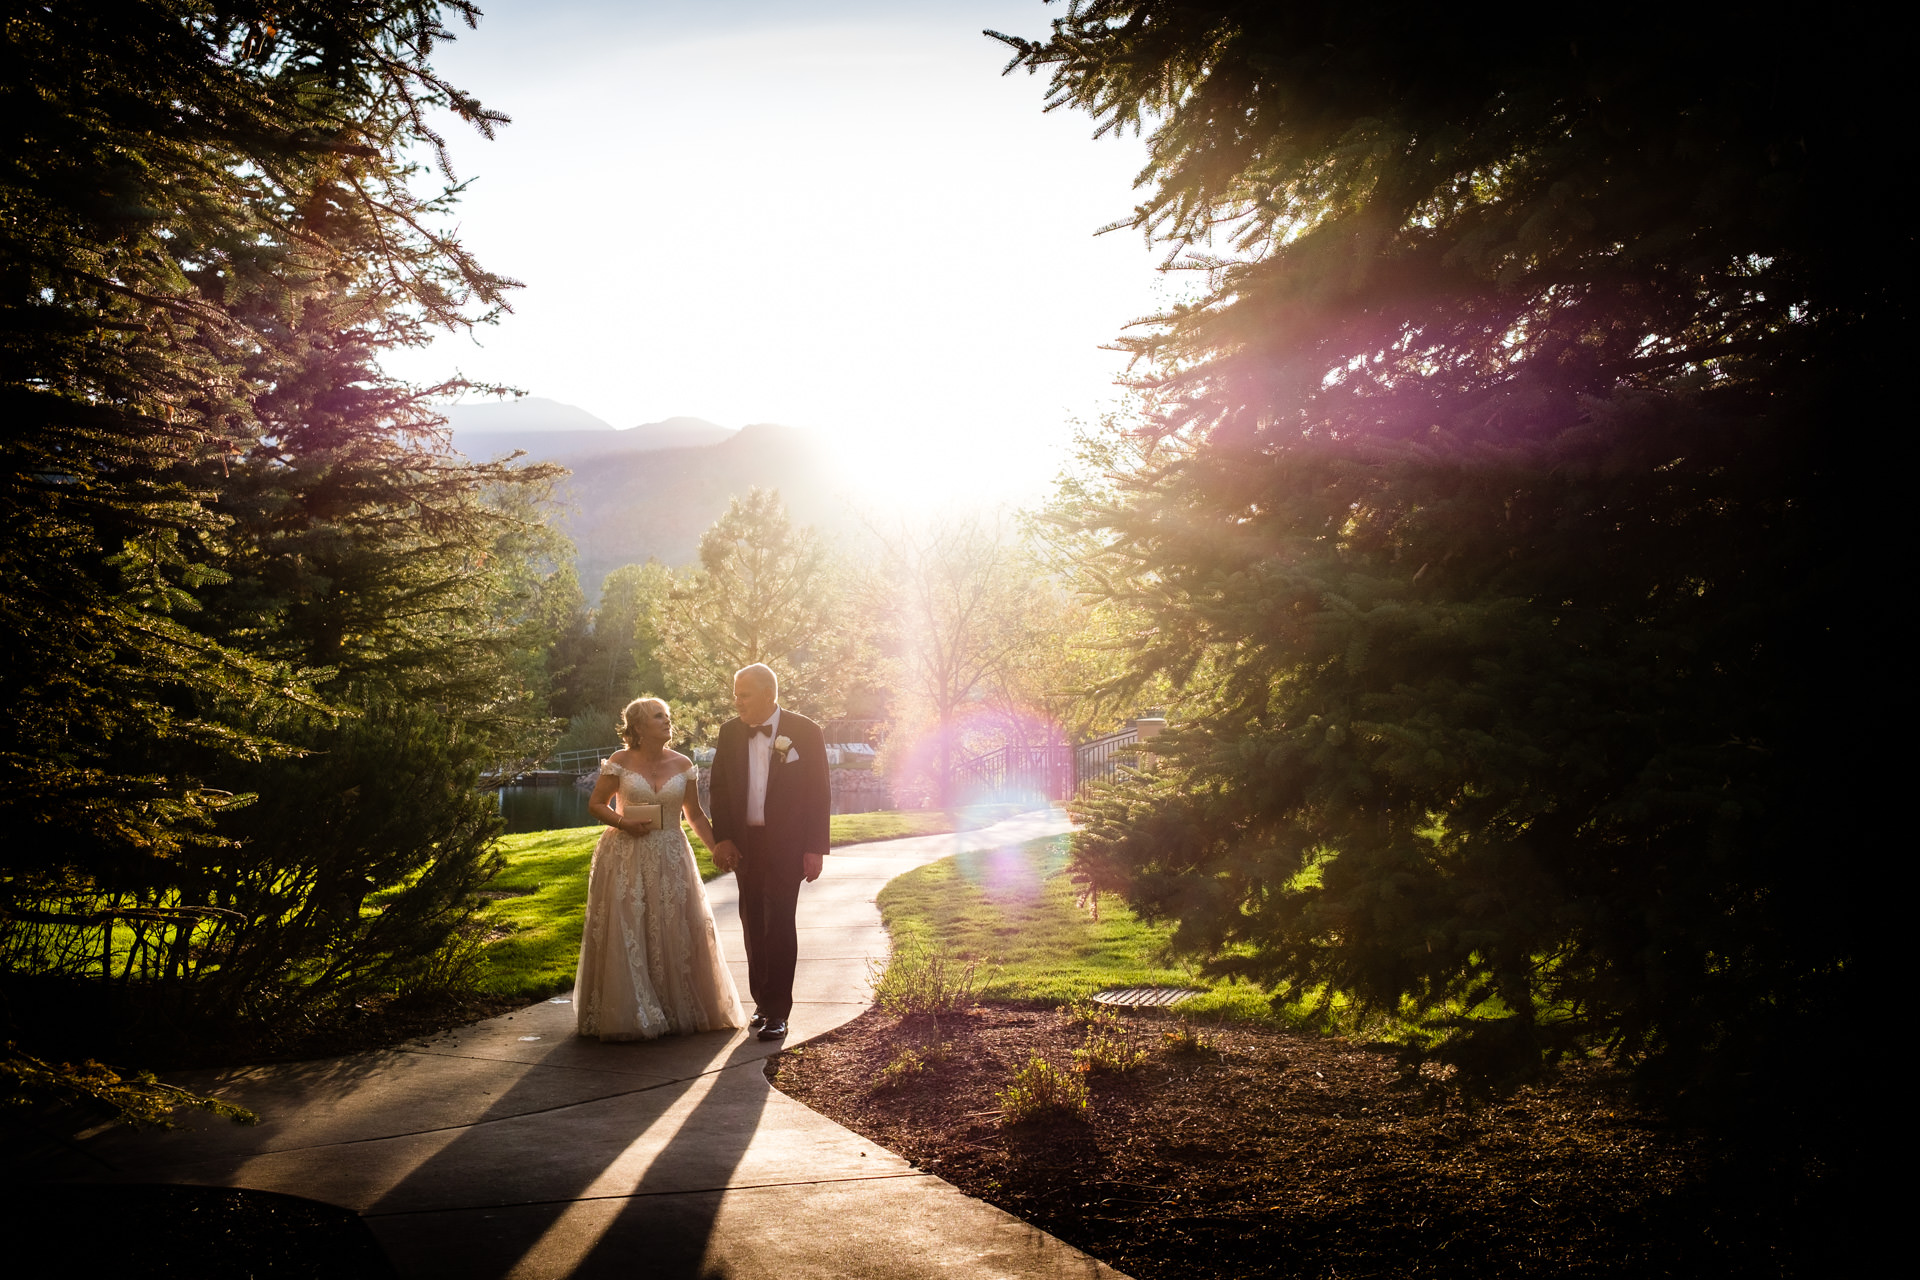 The Broadmoor Wedding Venue of Colorado Springs | The newlyweds walk away from their wedding ceremony